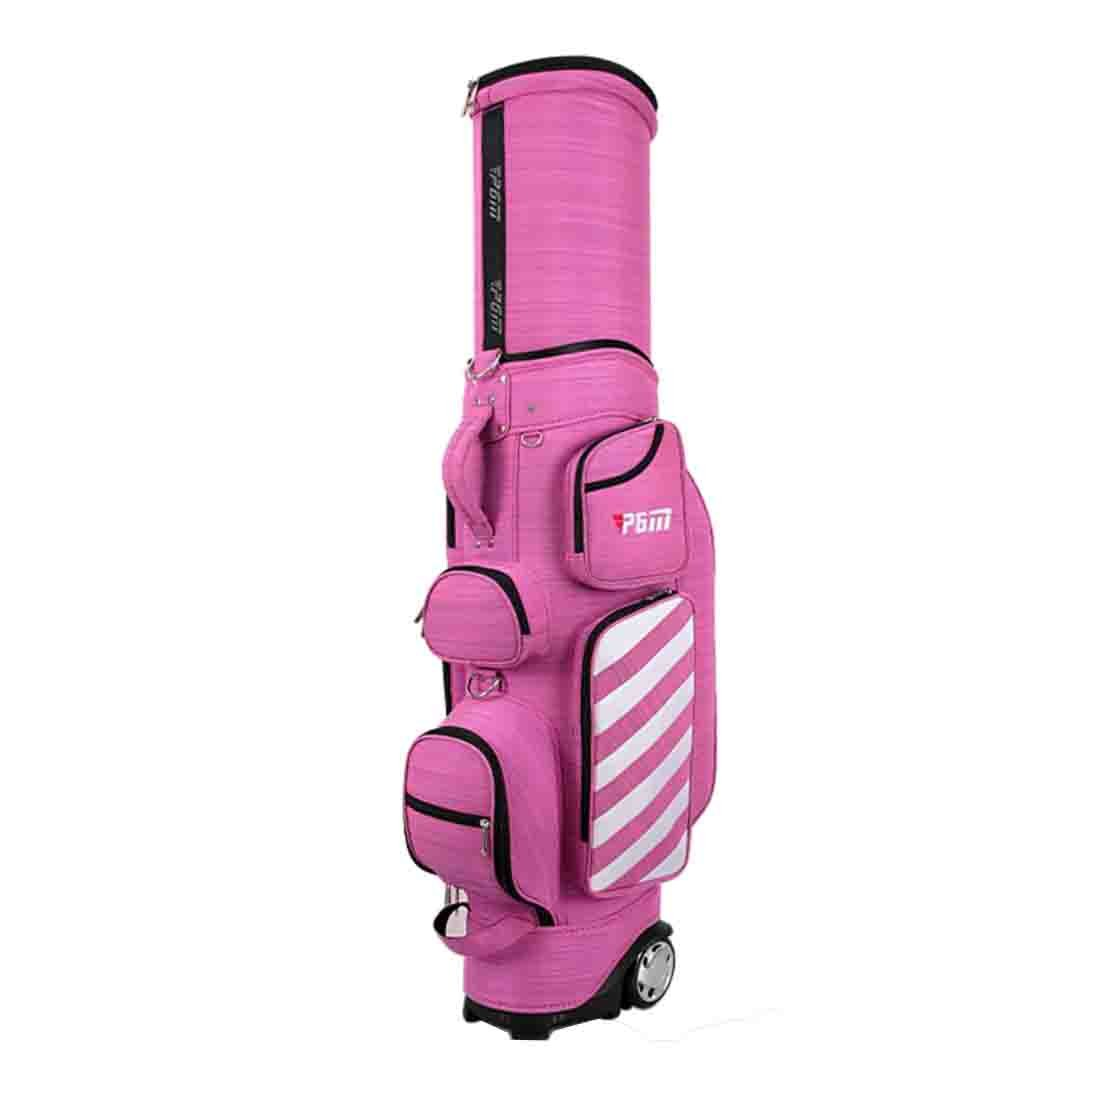 PATENT TELESCOPIC Amazing 2017 New Design Golf Travel Cover Double Use as Golf Stand Bag by HMX-PGM----Ultra Large Capacity (Pink)